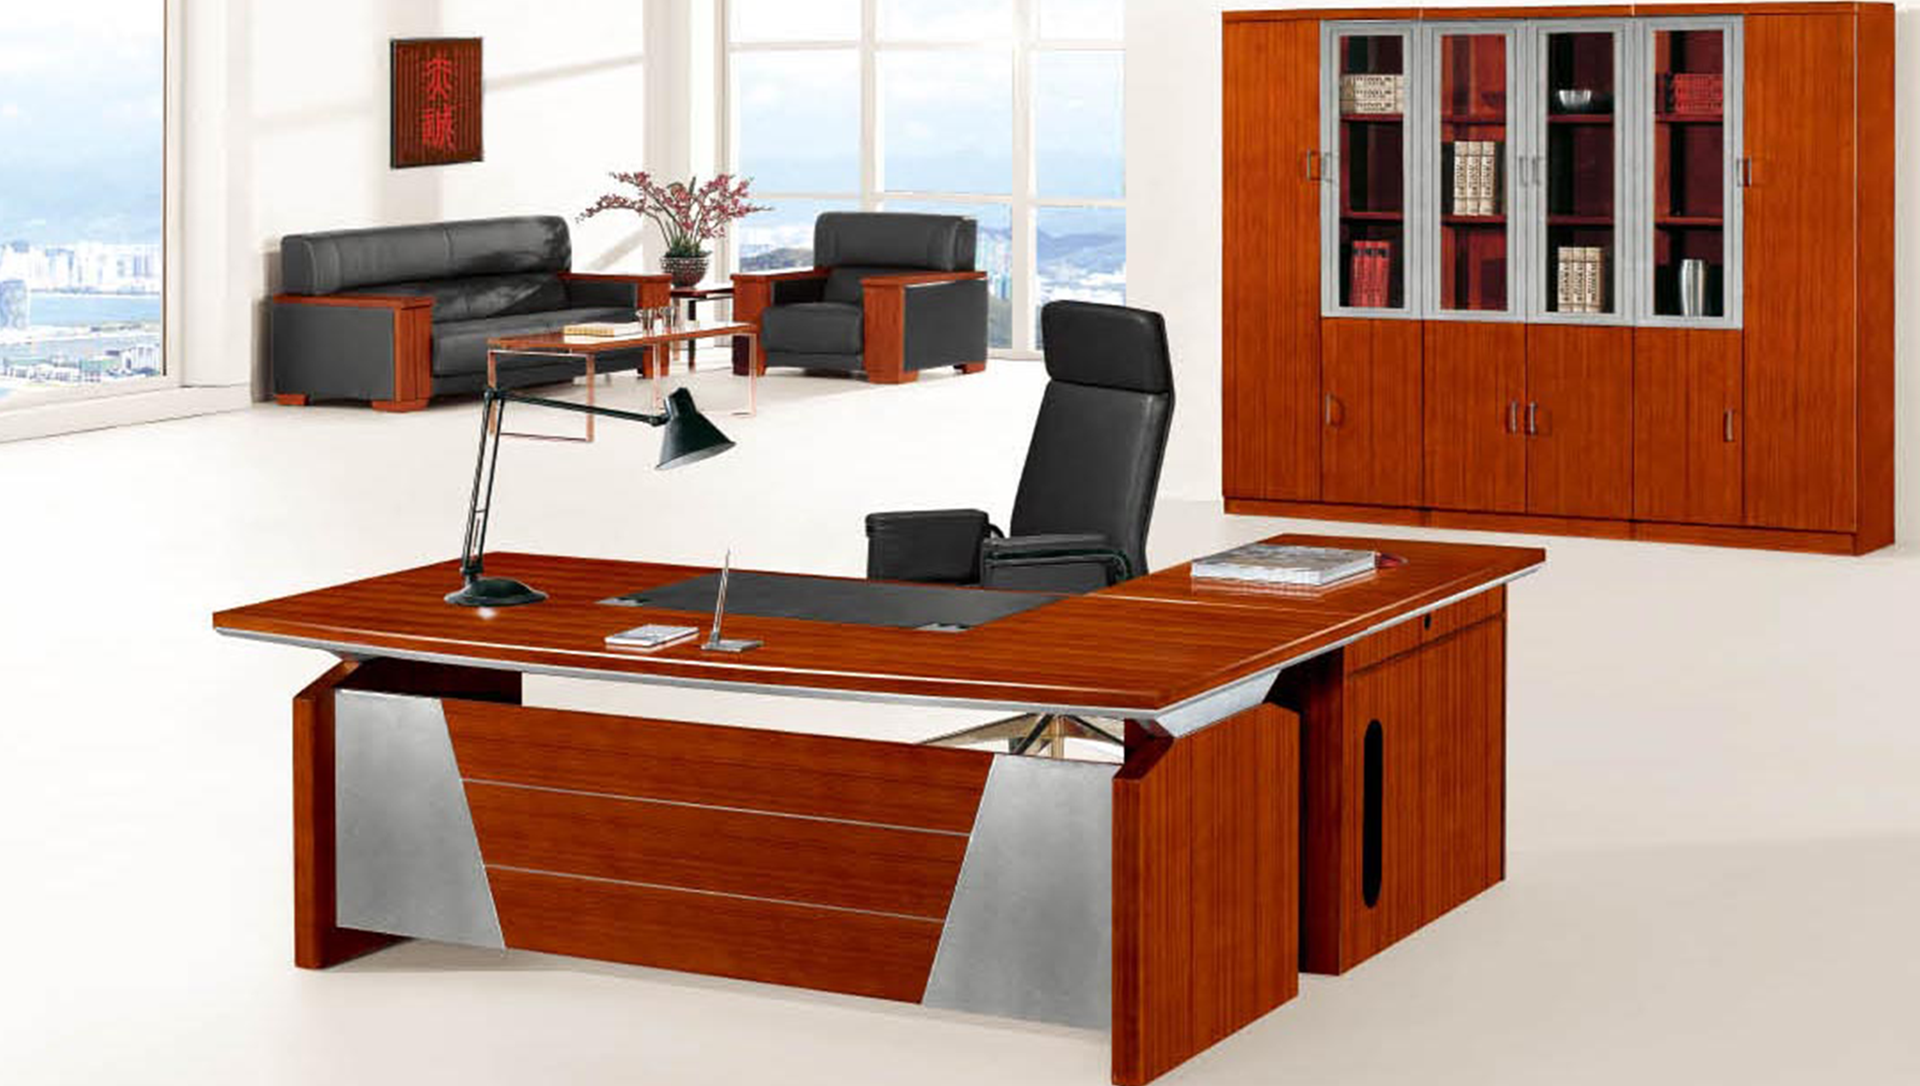 Impress Office Furniture | LED Lighting Perth | Office Furniture Perth & Impress Office Furniture | LED Lighting Perth | Office Furniture ...